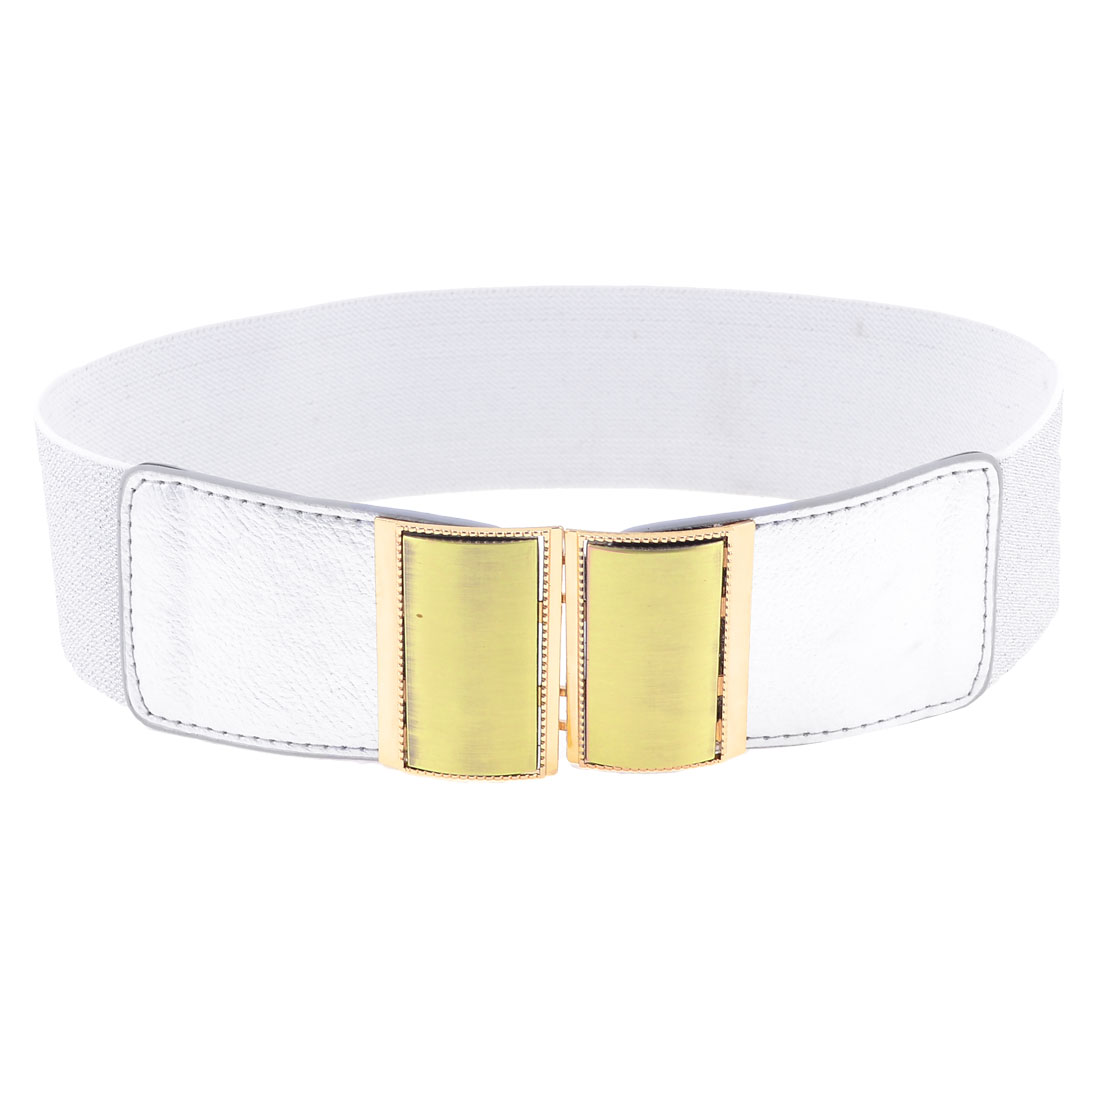 Two Tone Rectangle Interlocking Buckle Cinch Waist Belt Band